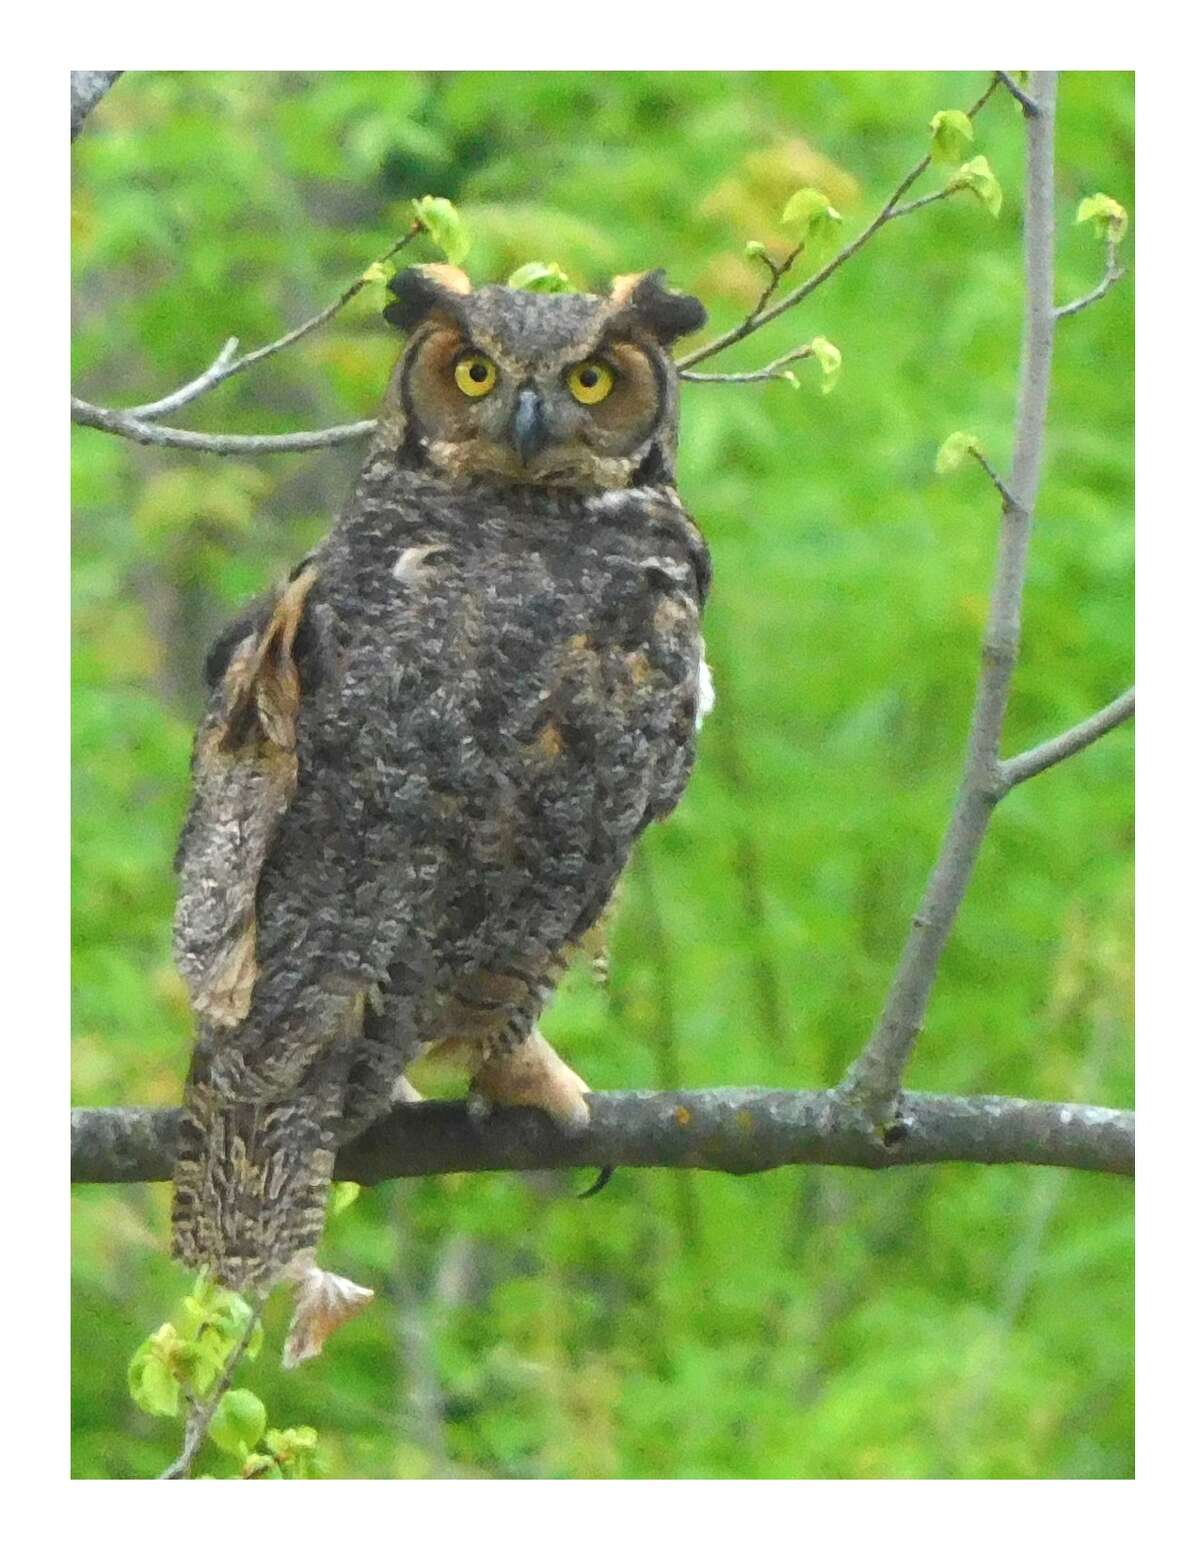 The great horned owl after it was released back into the wild.